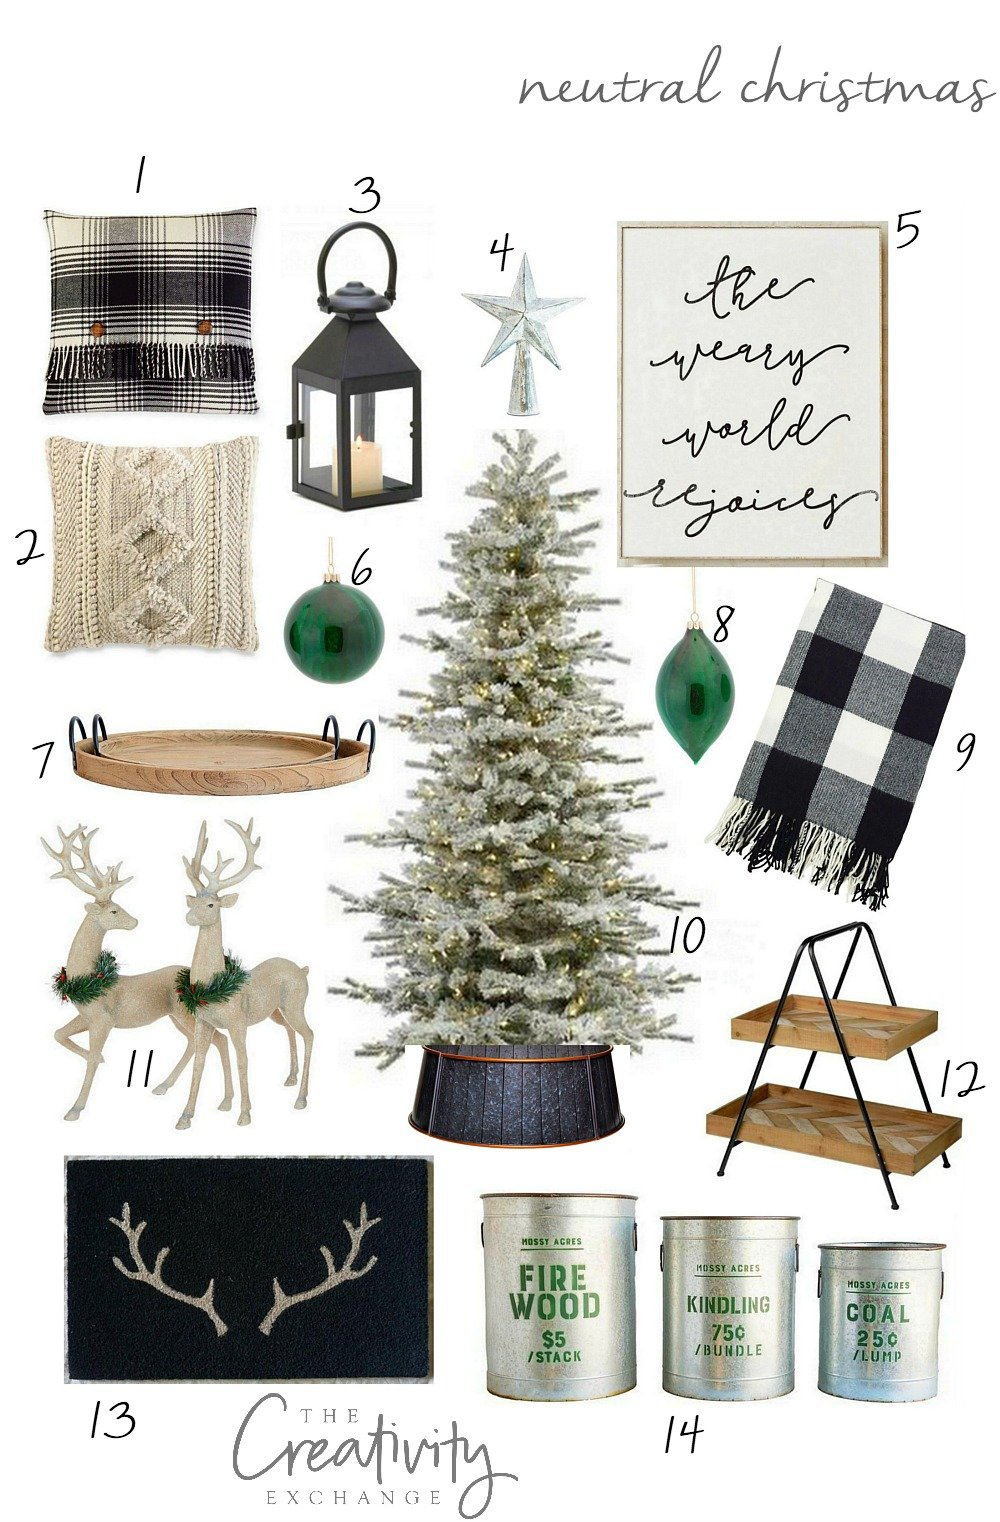 Neutral Christmas Design Board with Product Sources